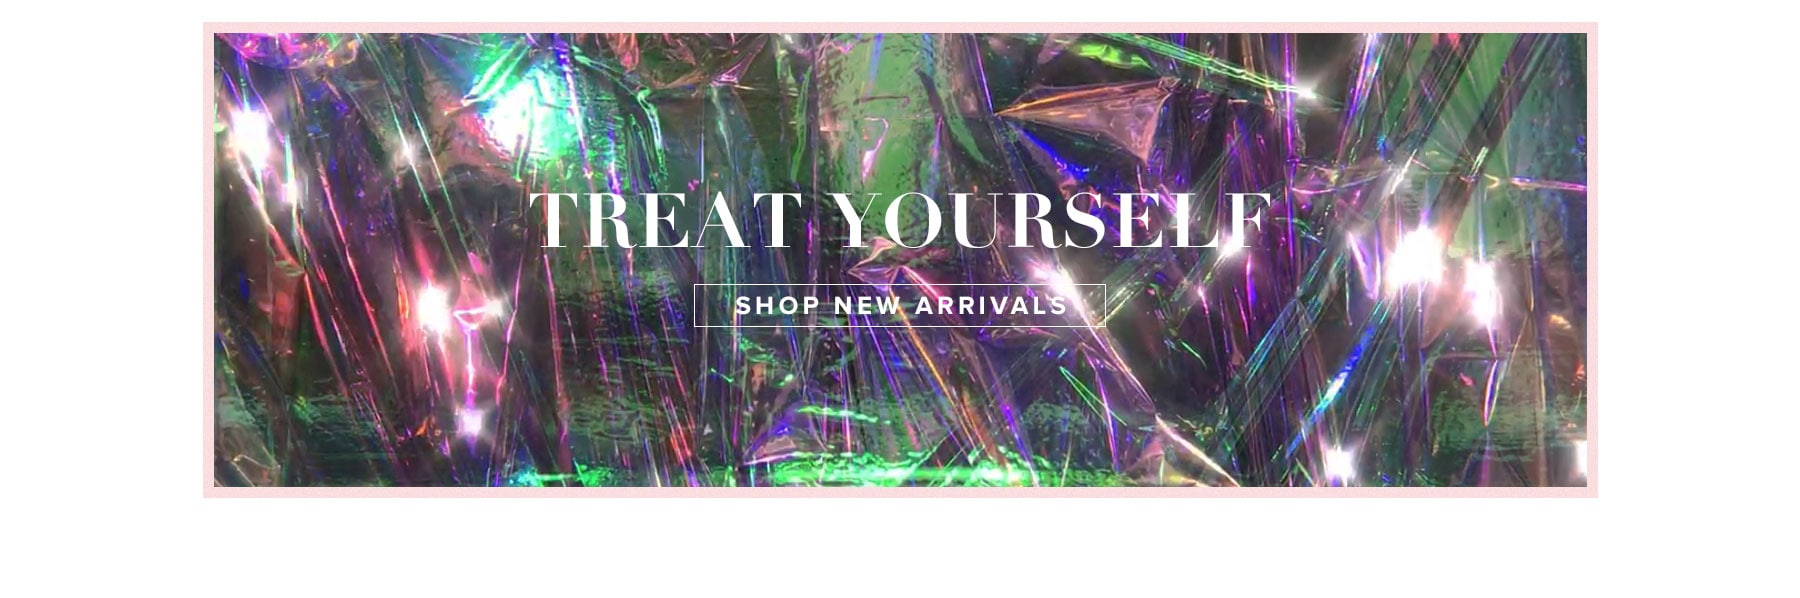 Treat Yourself. Shop New Arrivals.